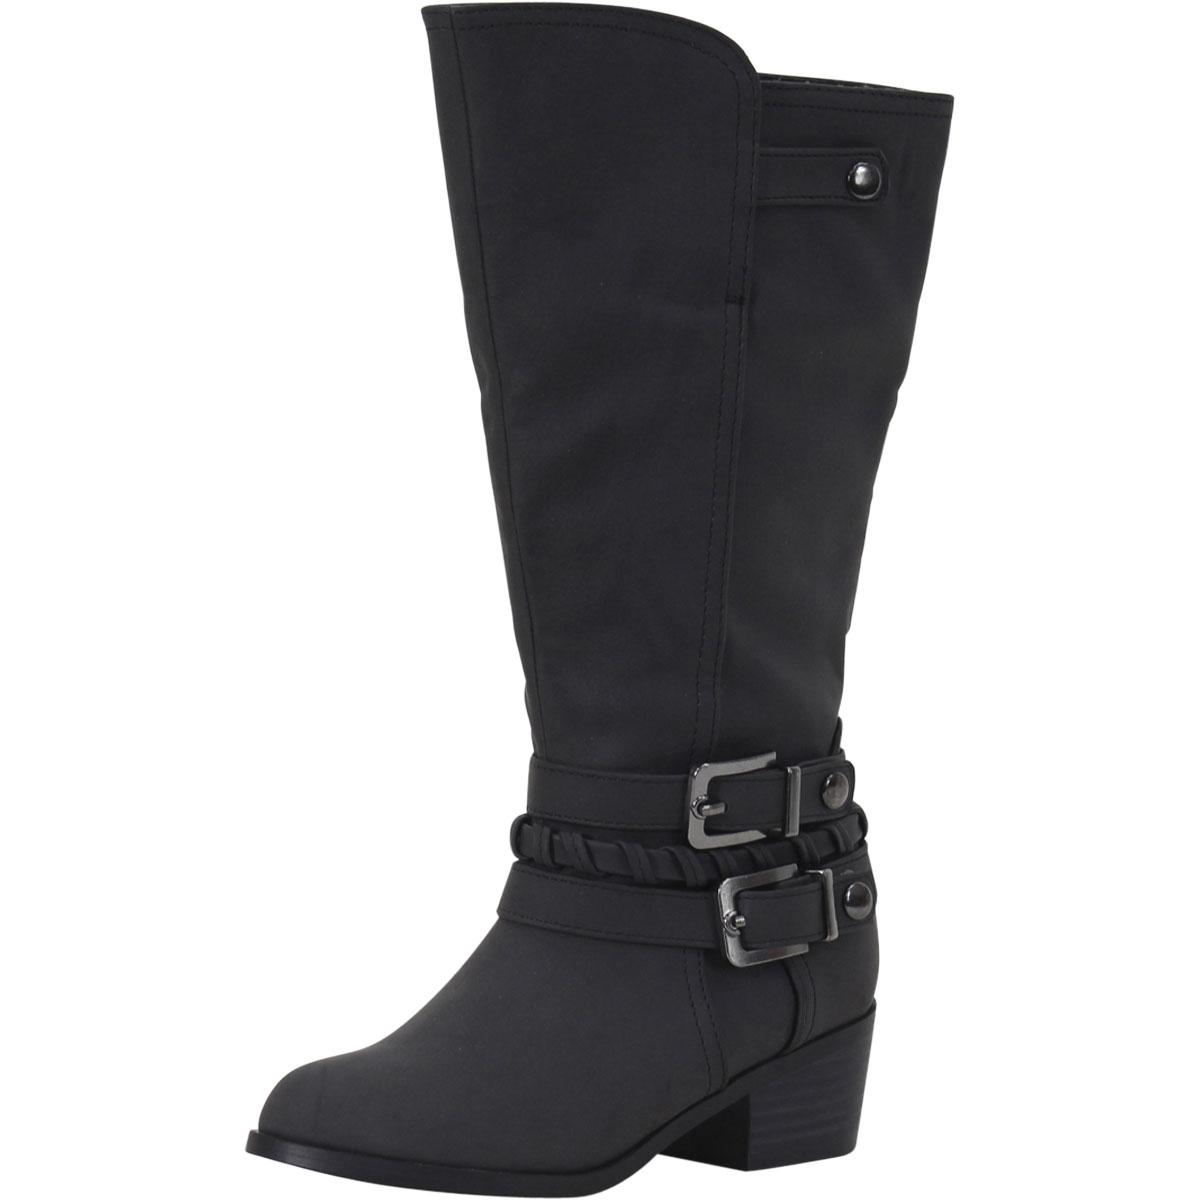 Image of Sugar Little/Big Girl's Brownie Tall Riding Boots Shoes - Black - 4 M US Big Kid